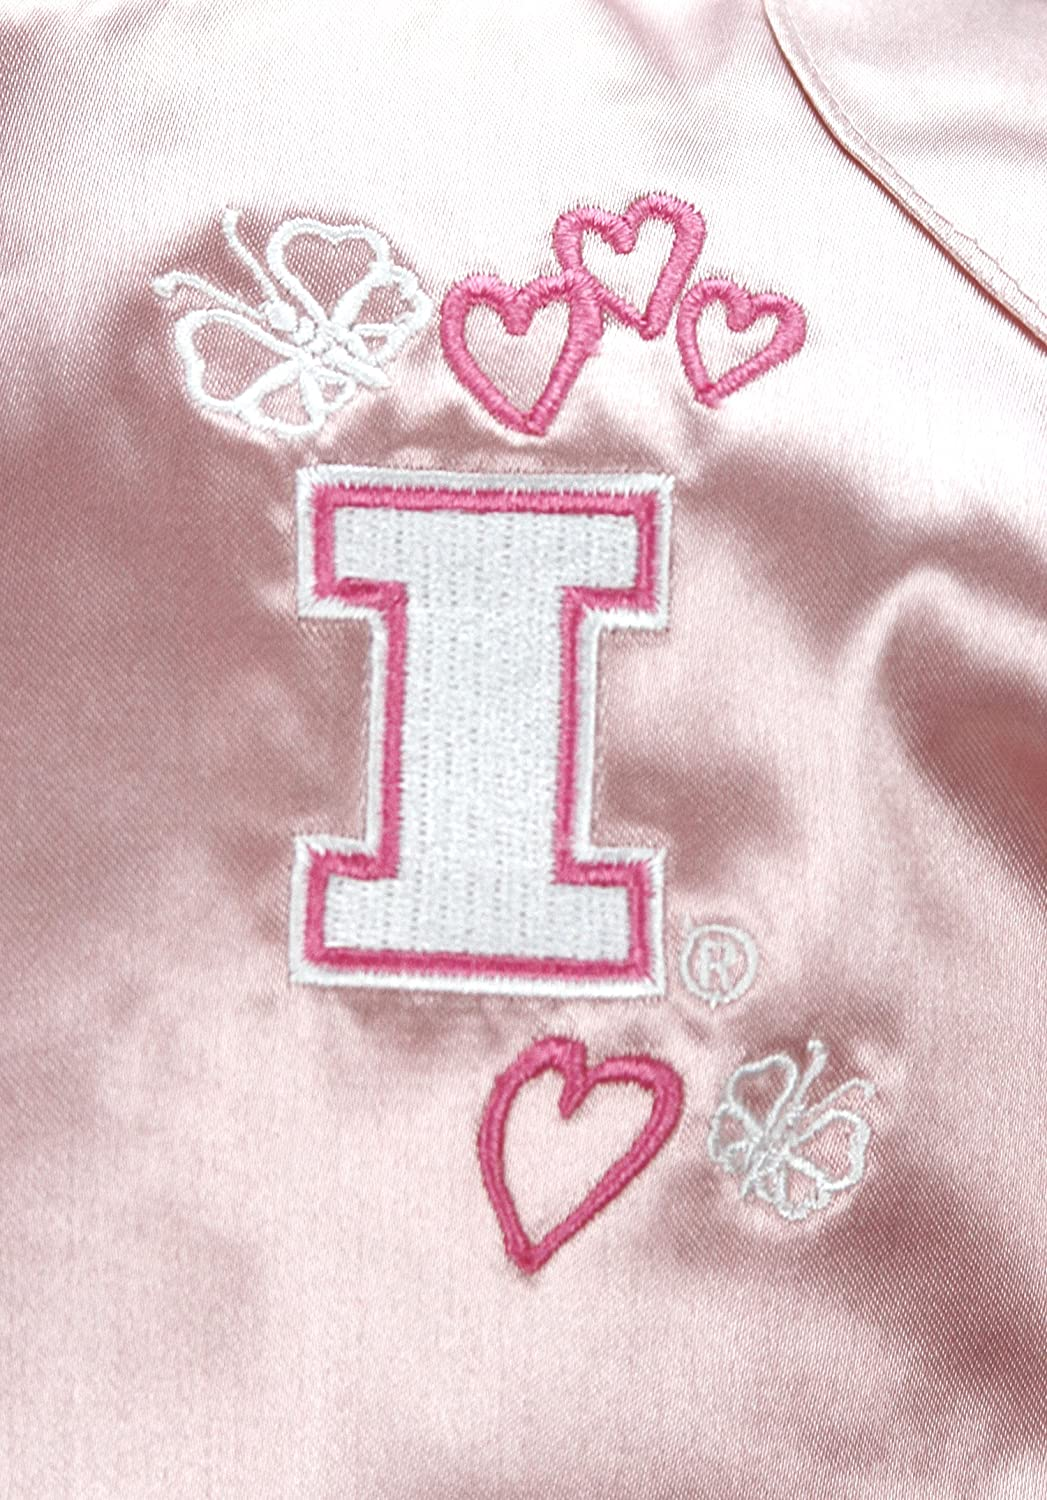 adidas NCAA Girls Infants (0M-24M) and Toddlers (2T-4T) Pink Satin Cheer Jacket, Team Options : Clothing